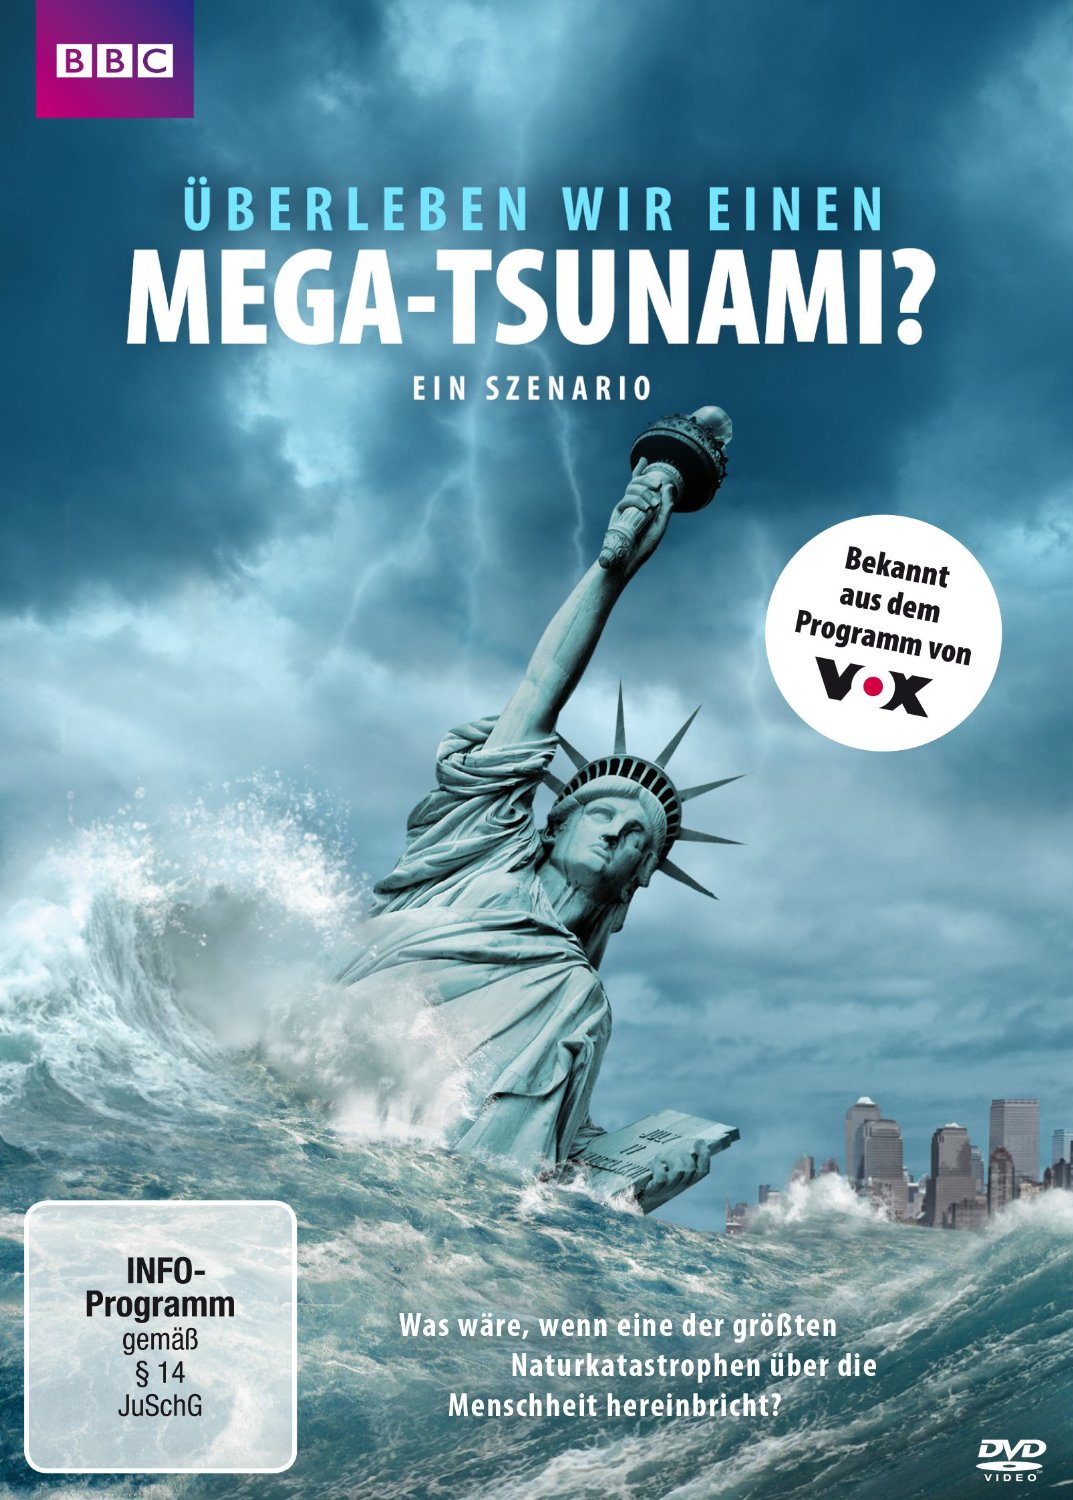 Could We Survive a Mega-Tsunami? (TV Movie 2013) - IMDb